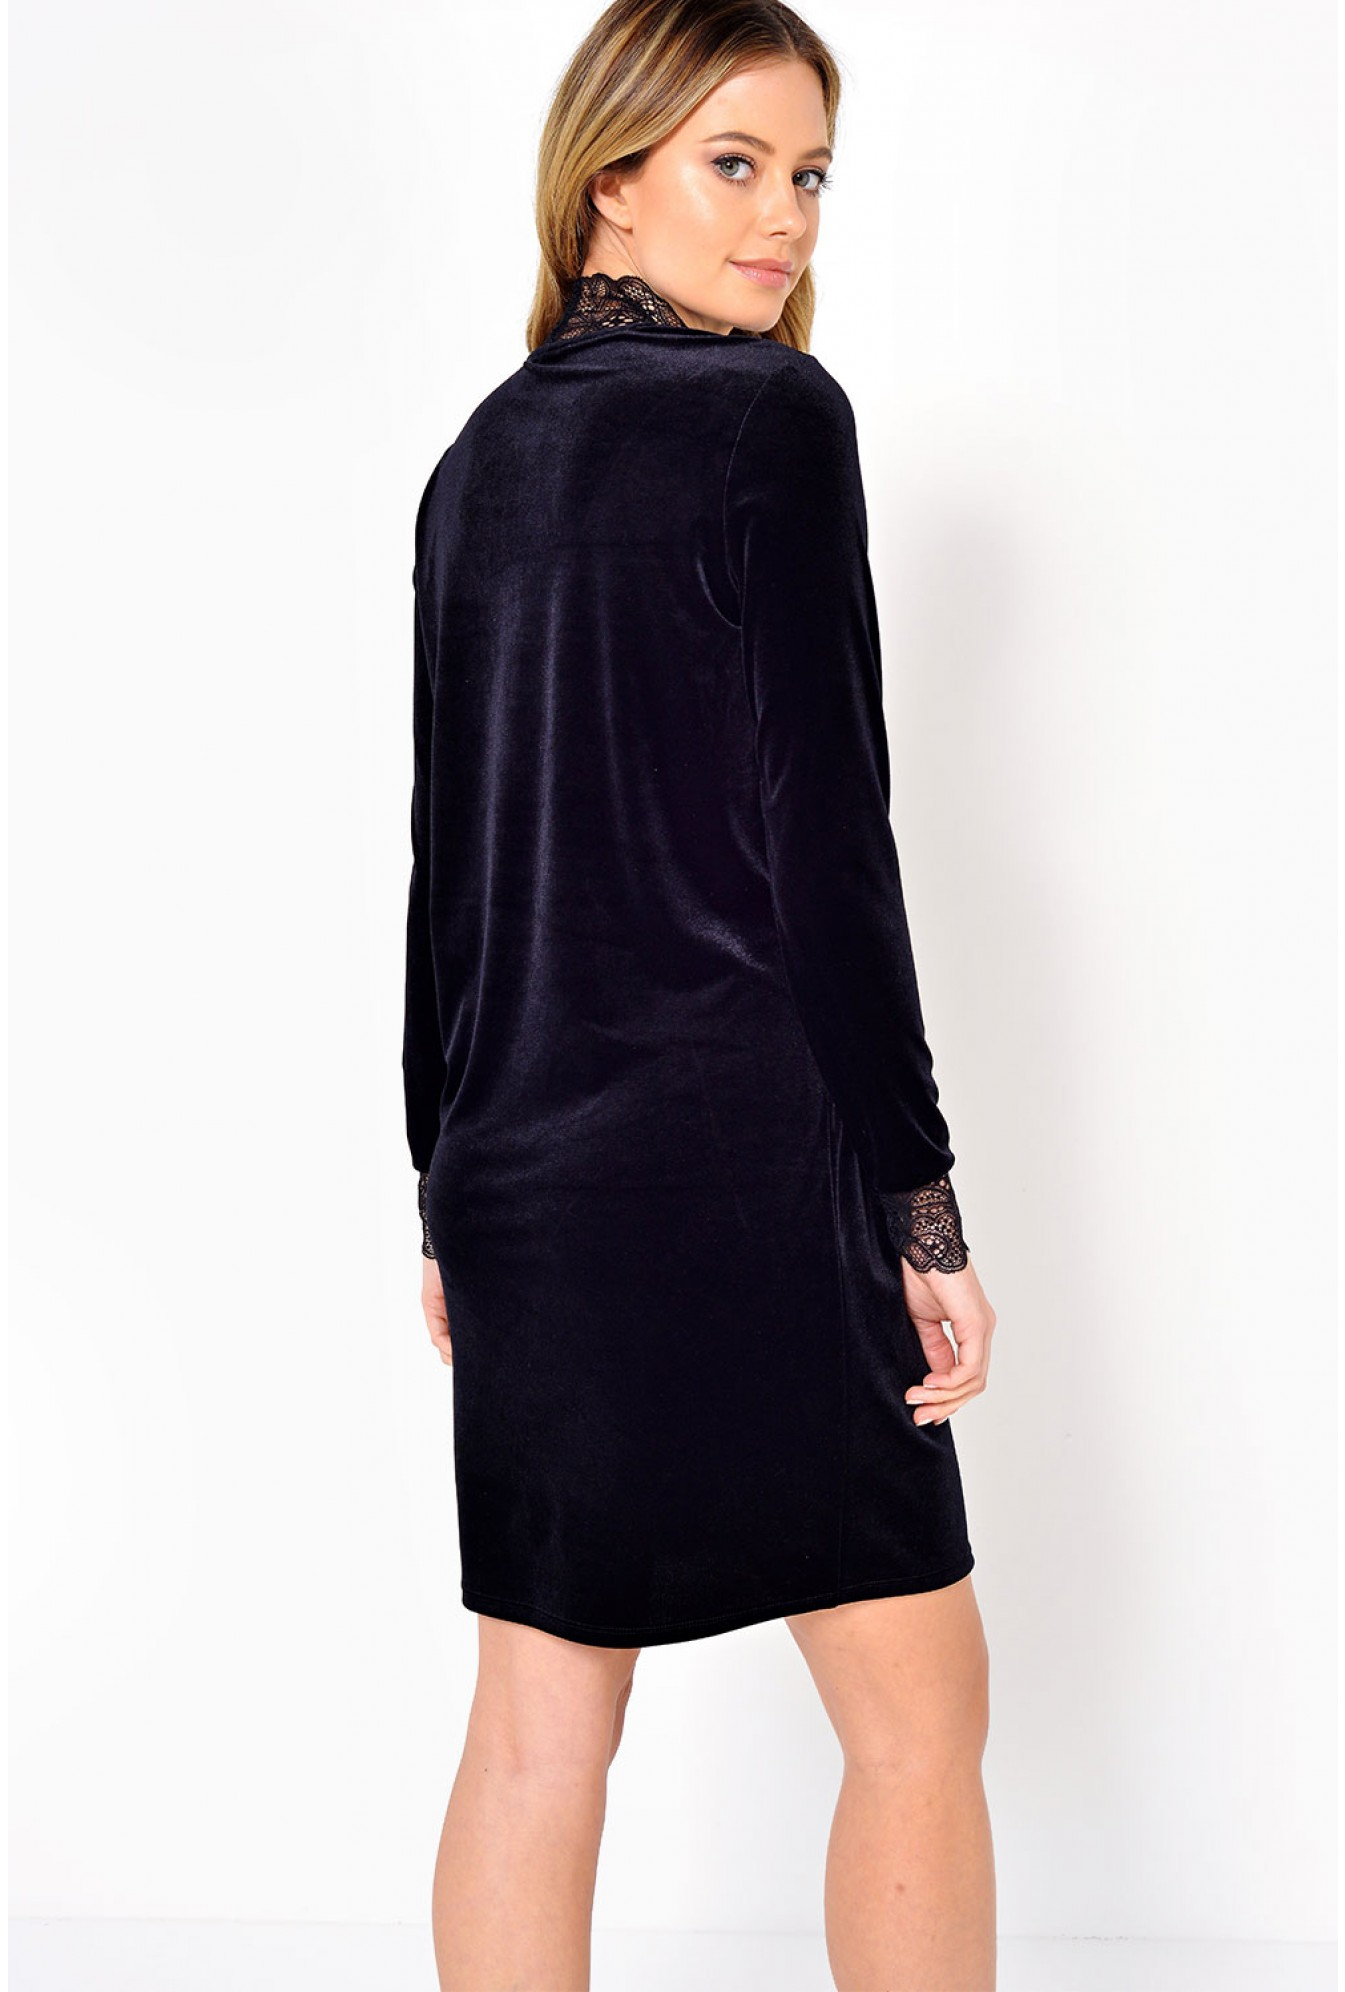 d76bb46dc5bf Vero Moda Viola Lace Velvet Dress in Black